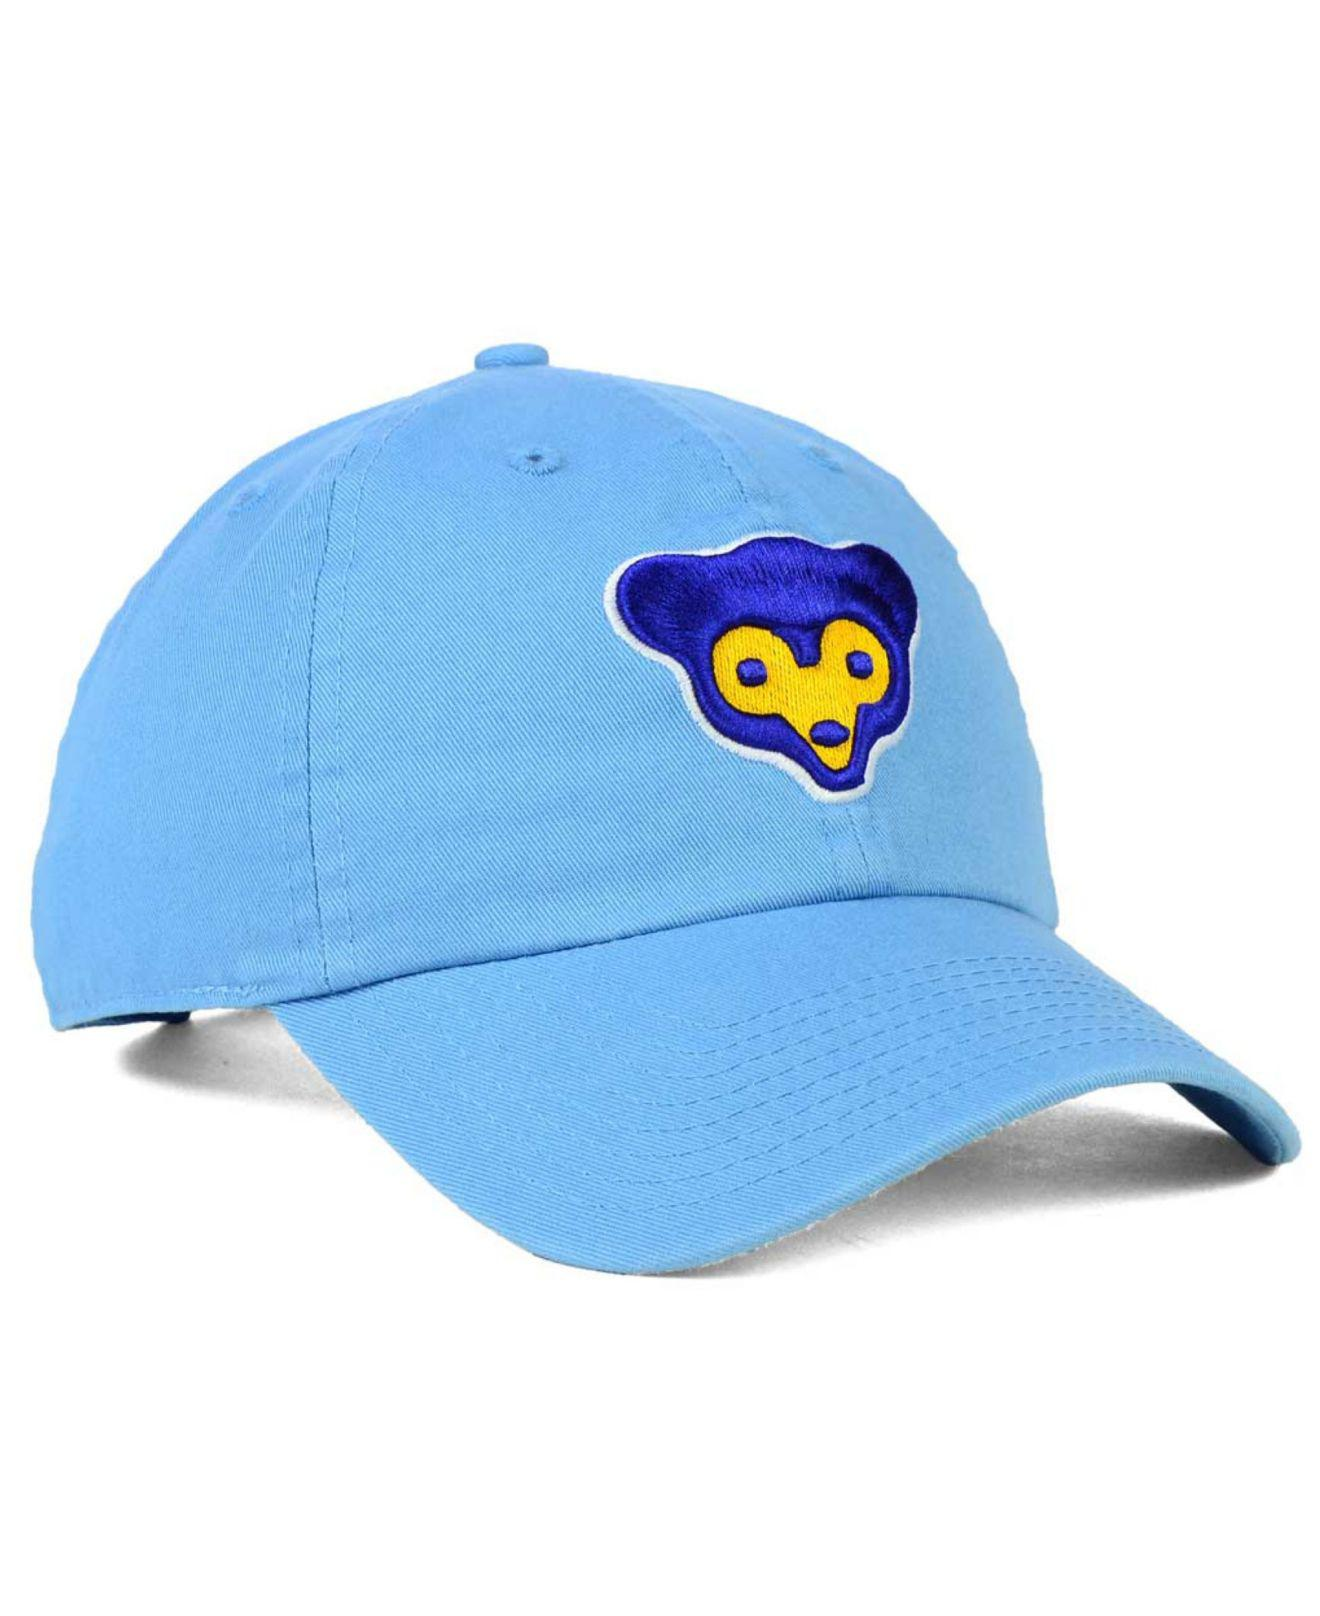 big sale 9c408 0775c ... new style 47 brand blue chicago cubs core clean up cap for men lyst.  view